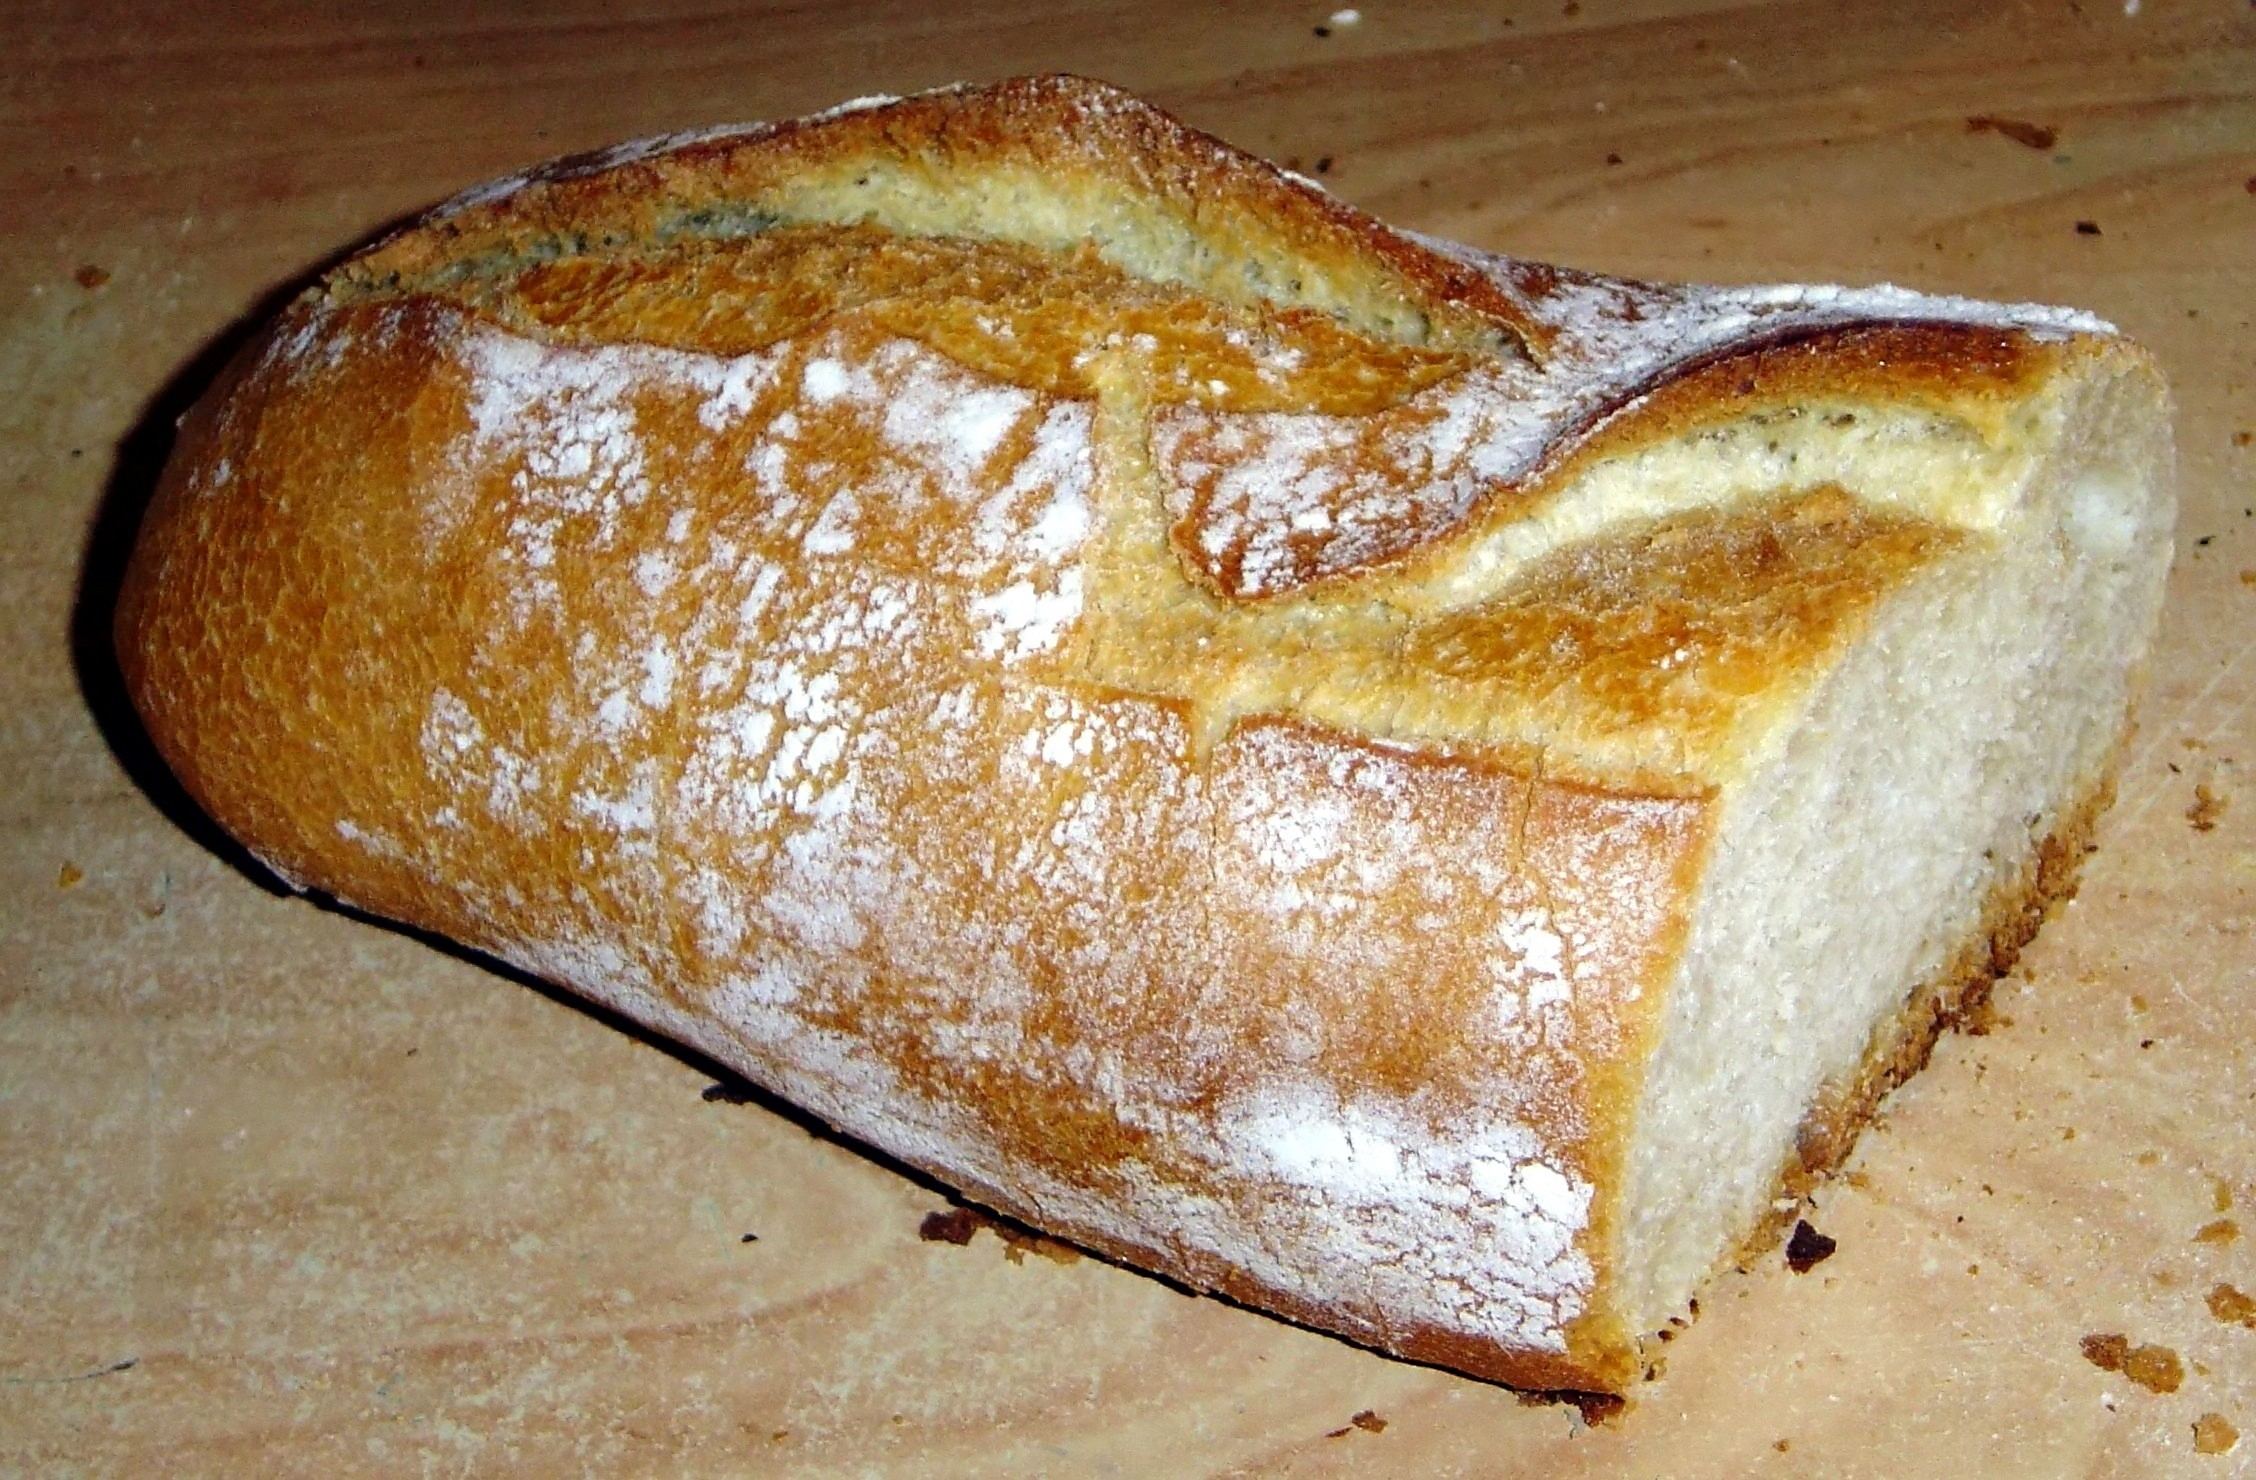 File:French bread DSC09293.jpg - Wikimedia Commons